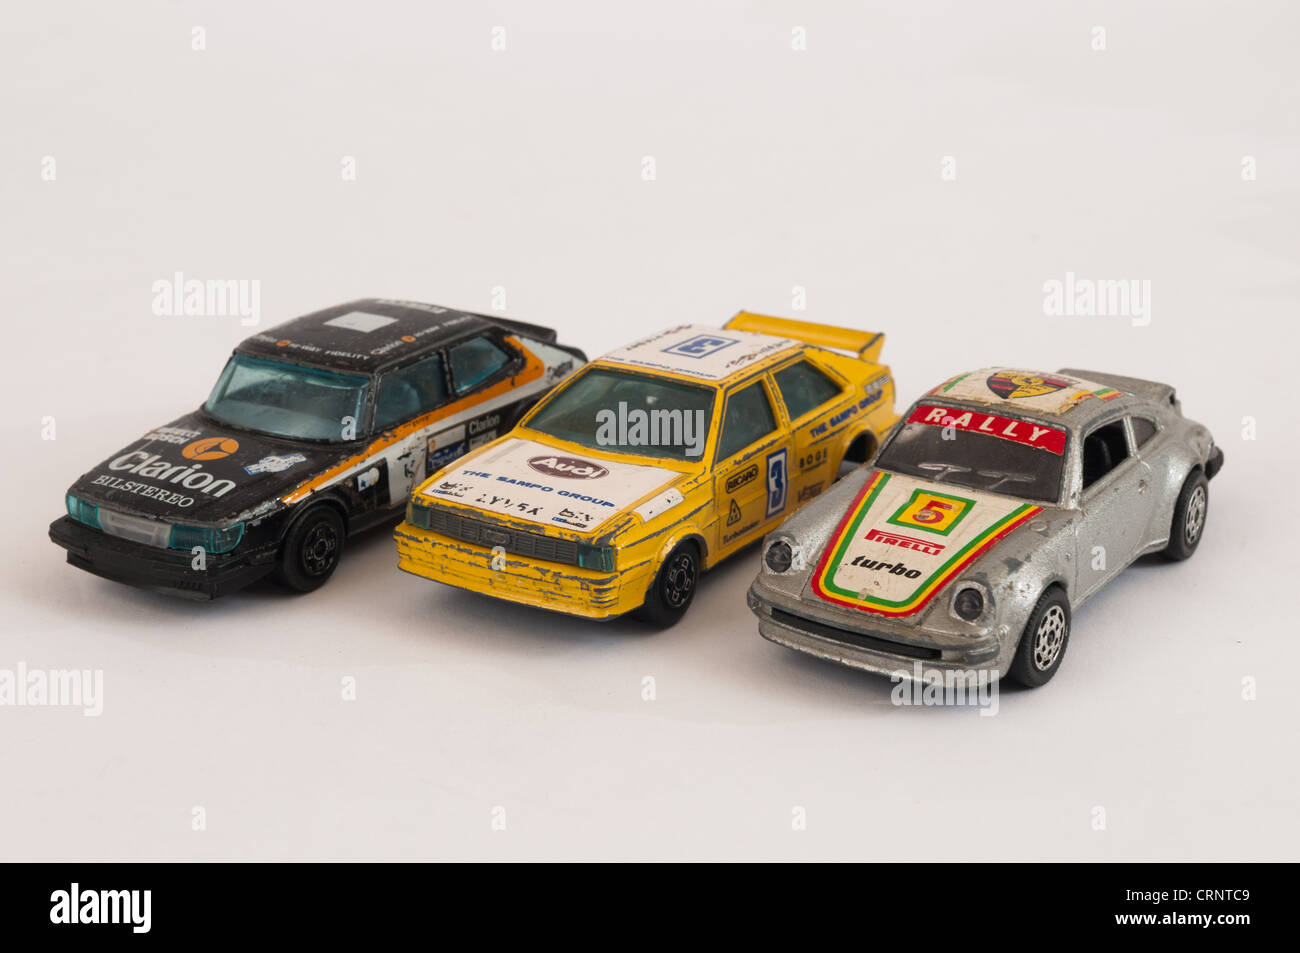 Collection of toy rally cars Stock Photo: 49037977 - Alamy